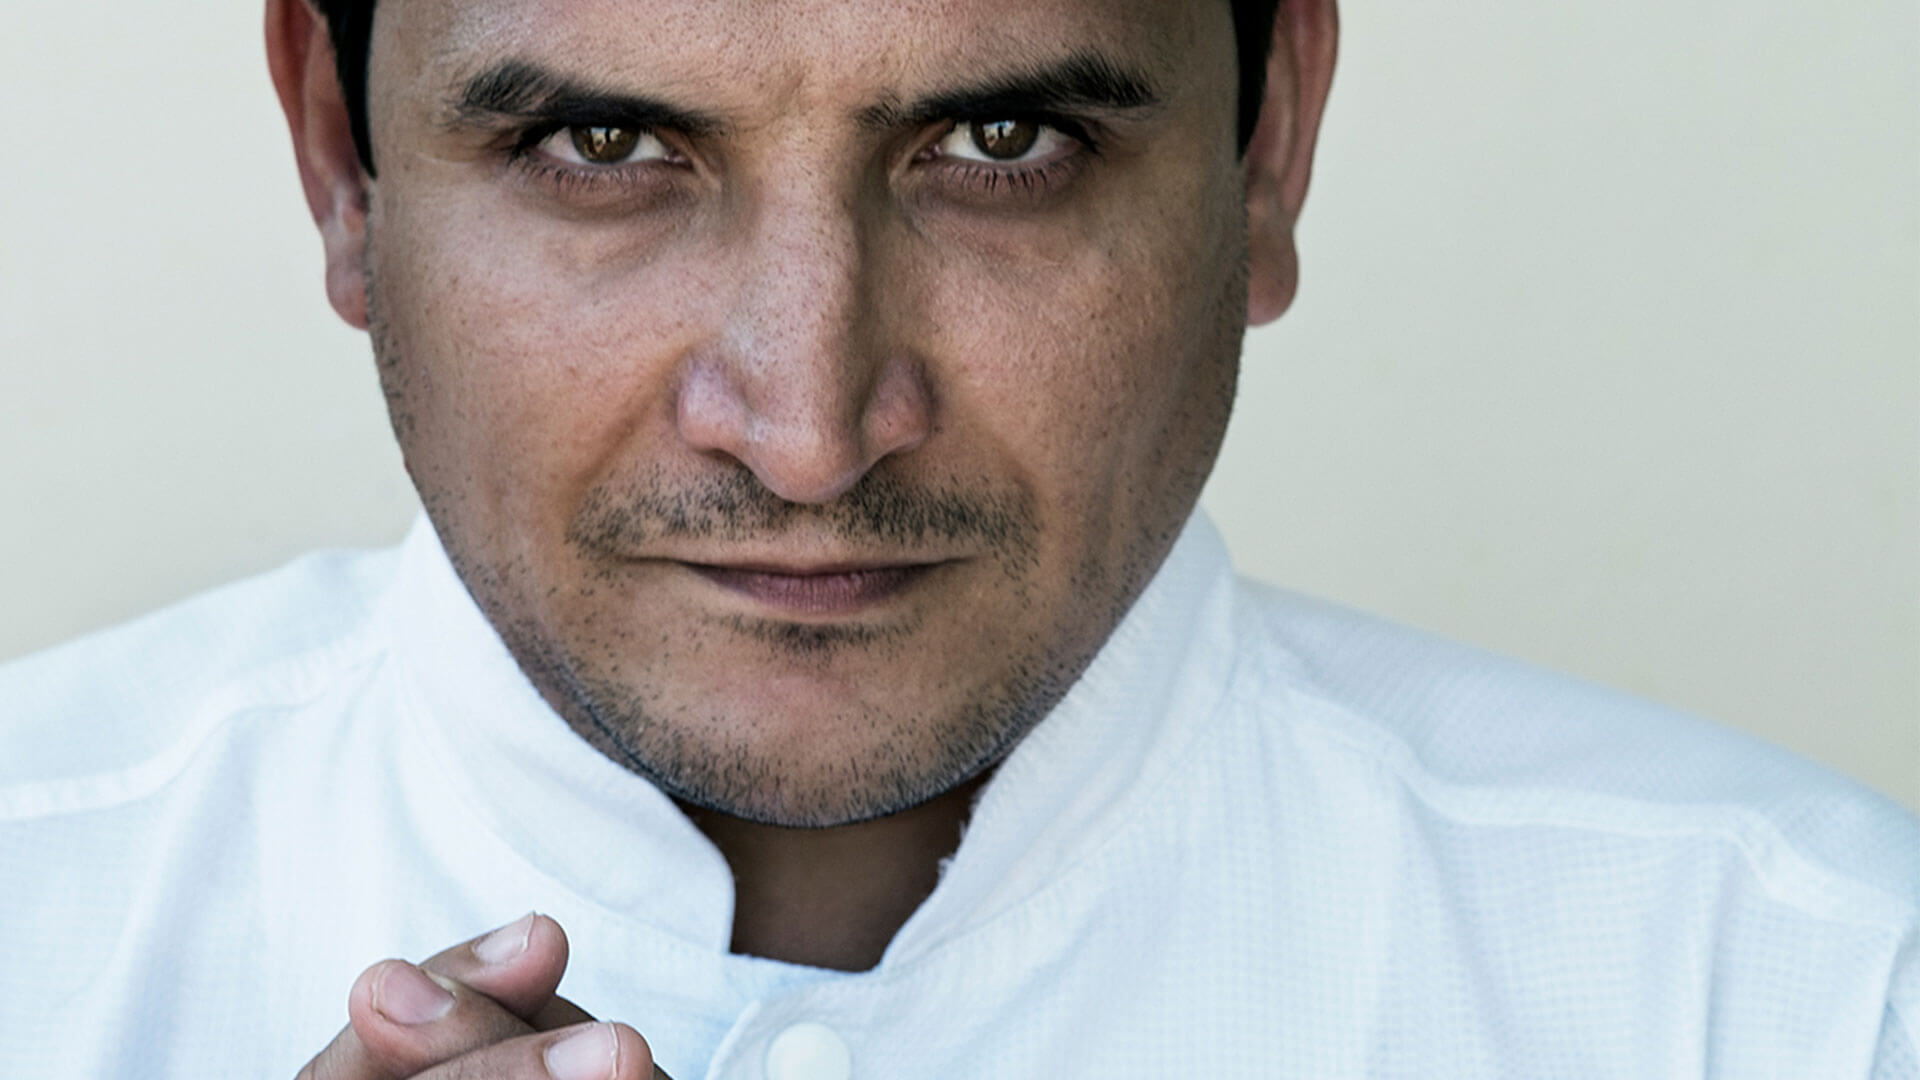 Star Chef Mauro Colagreco